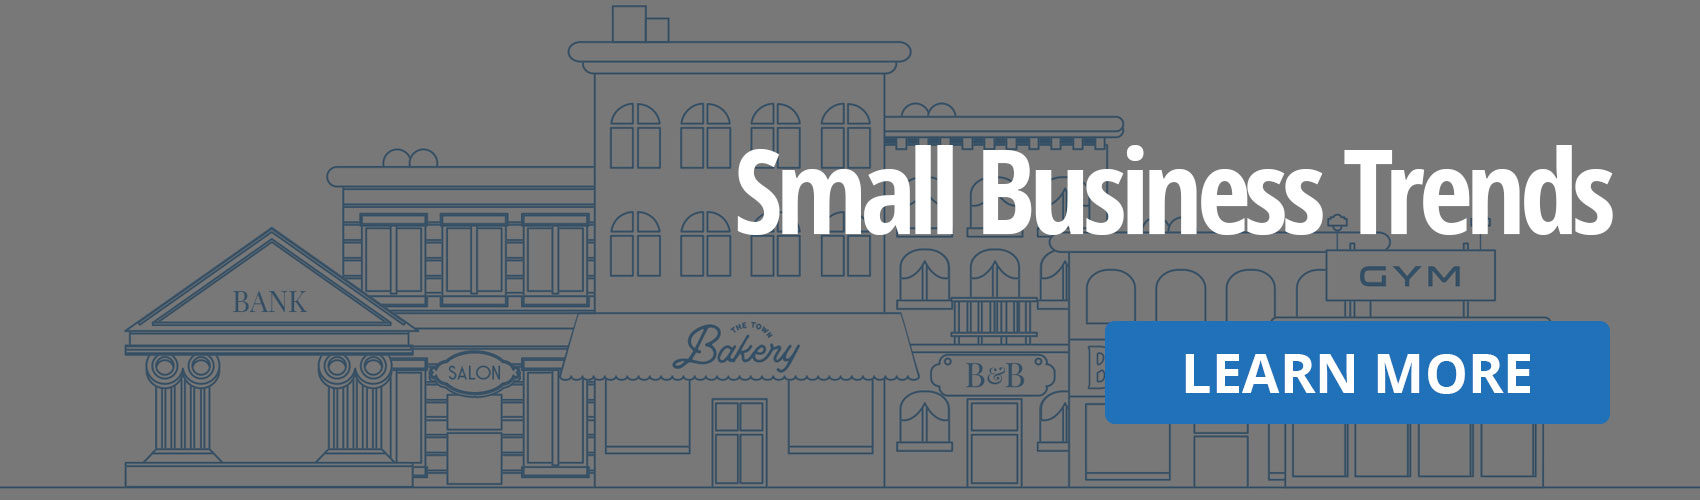 Small business trends banner image